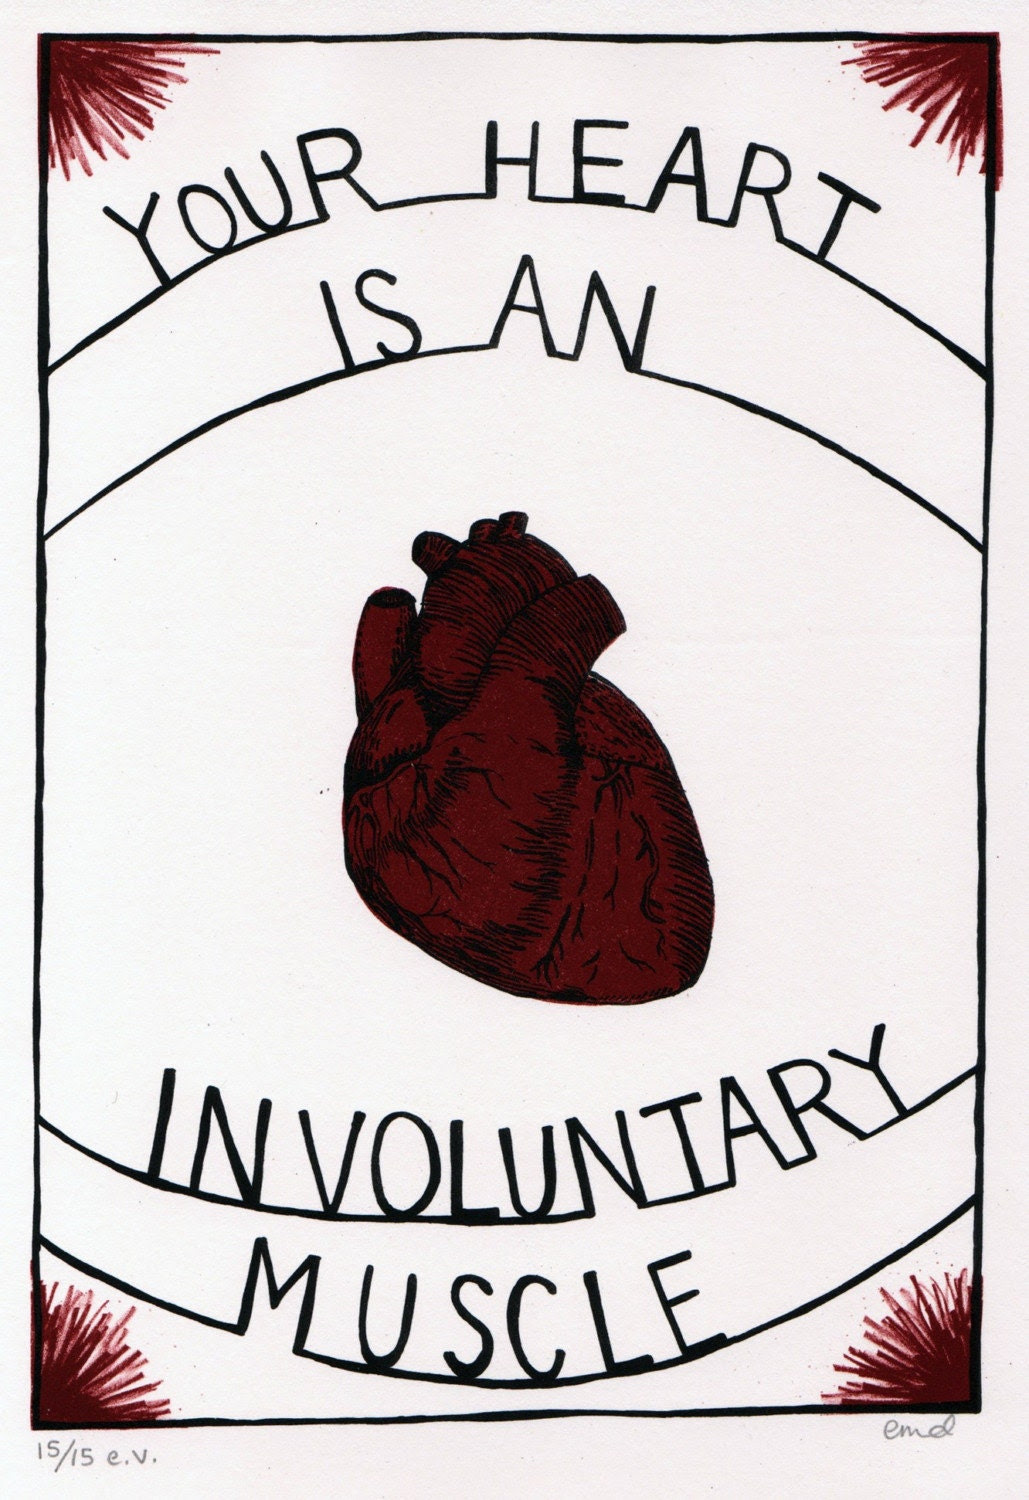 Involuntary Heart Print - 11.75 x 8 in.